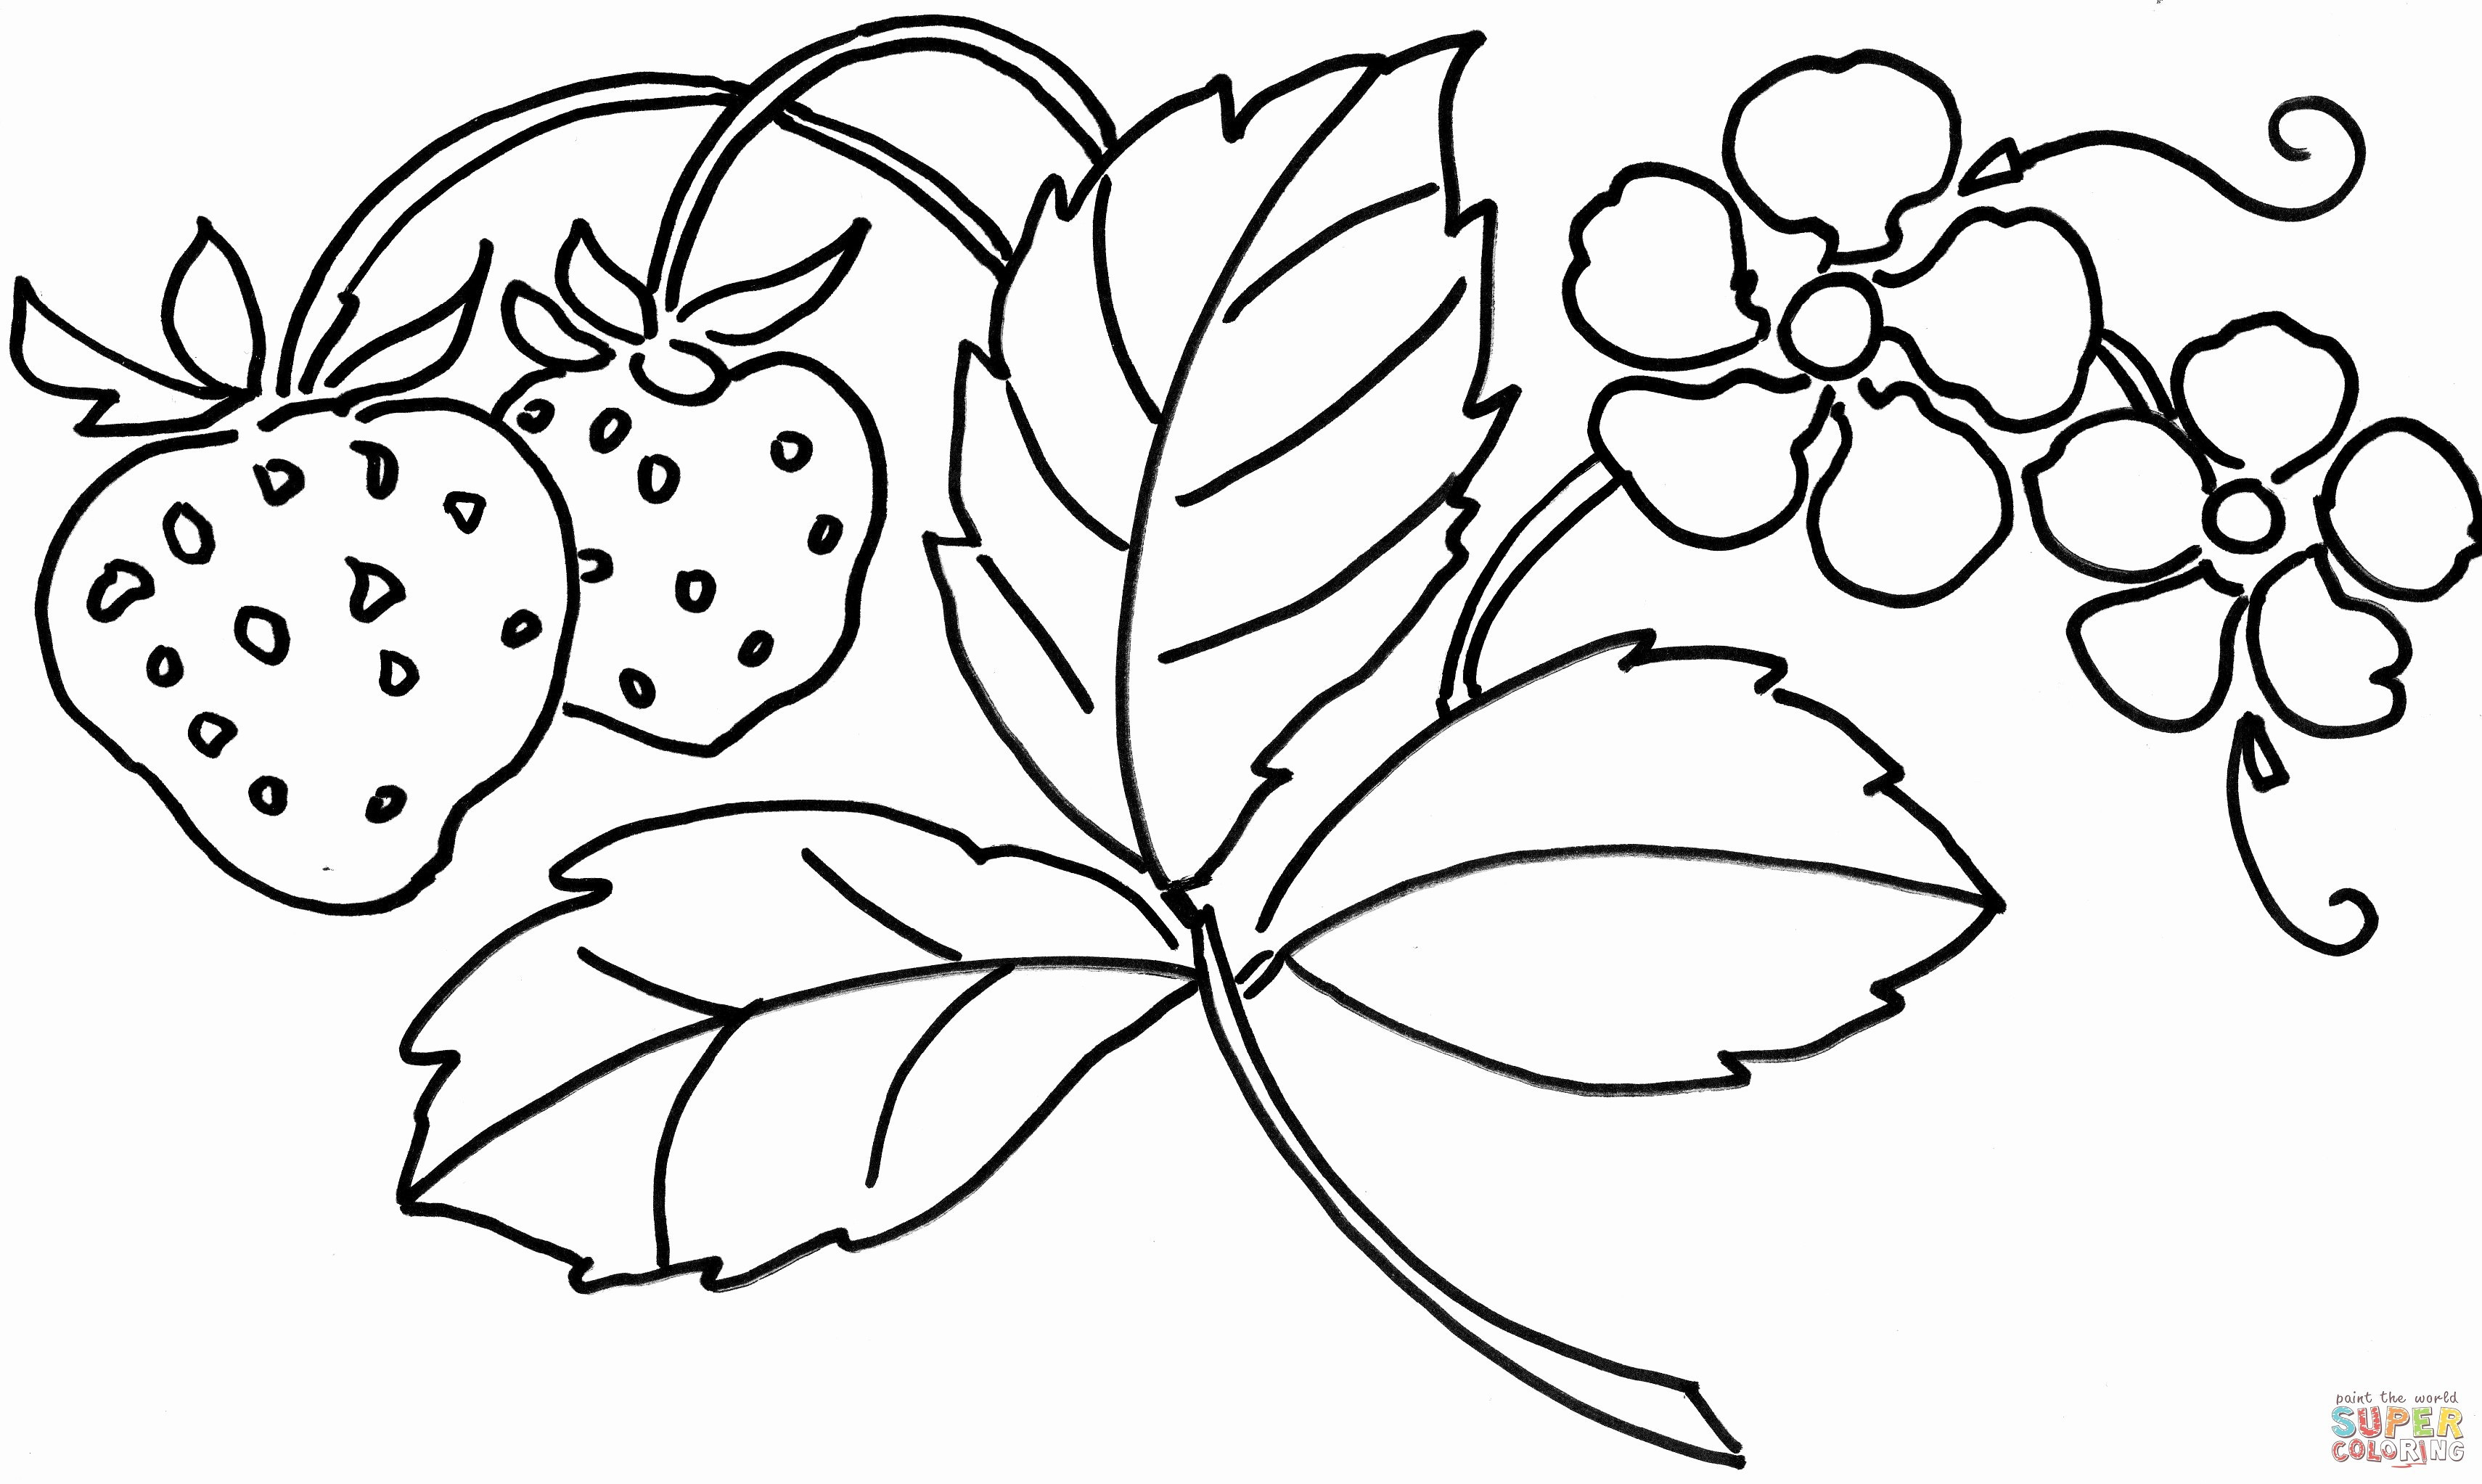 coloring pages hawaiian flowers Download-Hawaiian Flower Coloring Page Coloring Pages Hawaiian Flowers Amazing Awesome 40 Fresh Collection 15-d